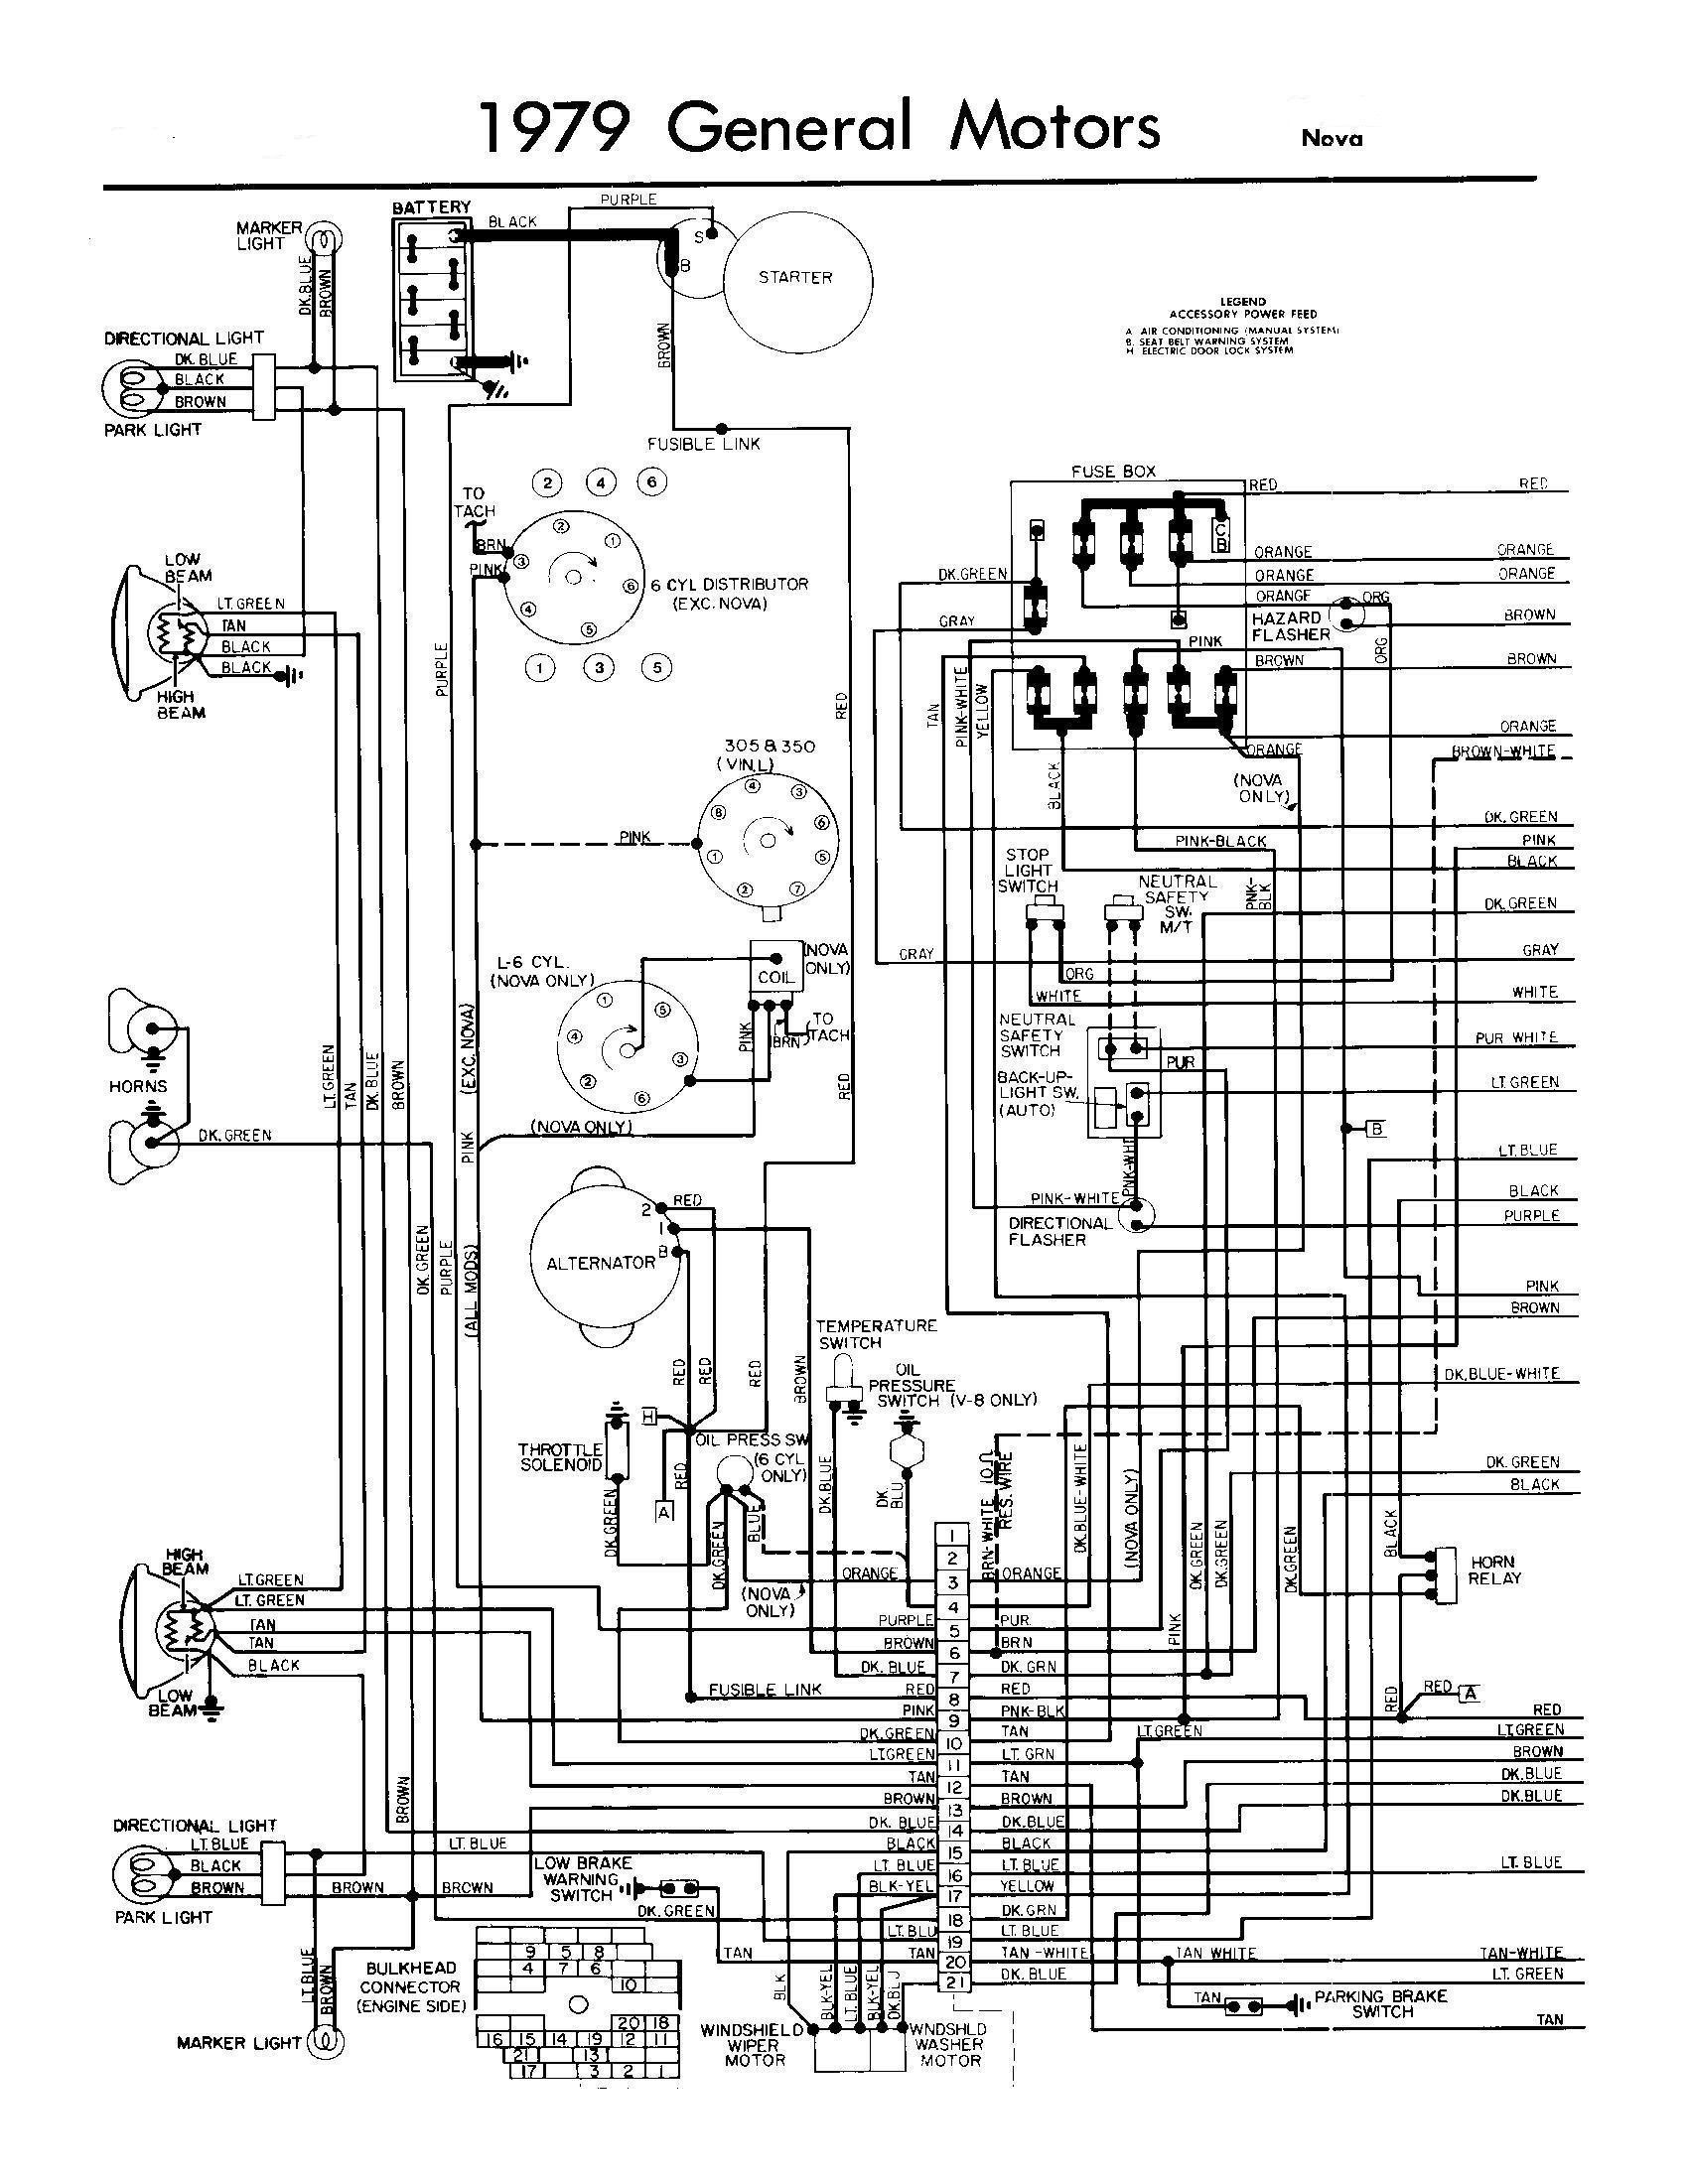 1970 impala wiring diagrams automotive wiring diagram library u2022 rh seigokanengland co uk 1970 chevy pickup wiring diagram 1970 chevy c10 wiring diagram